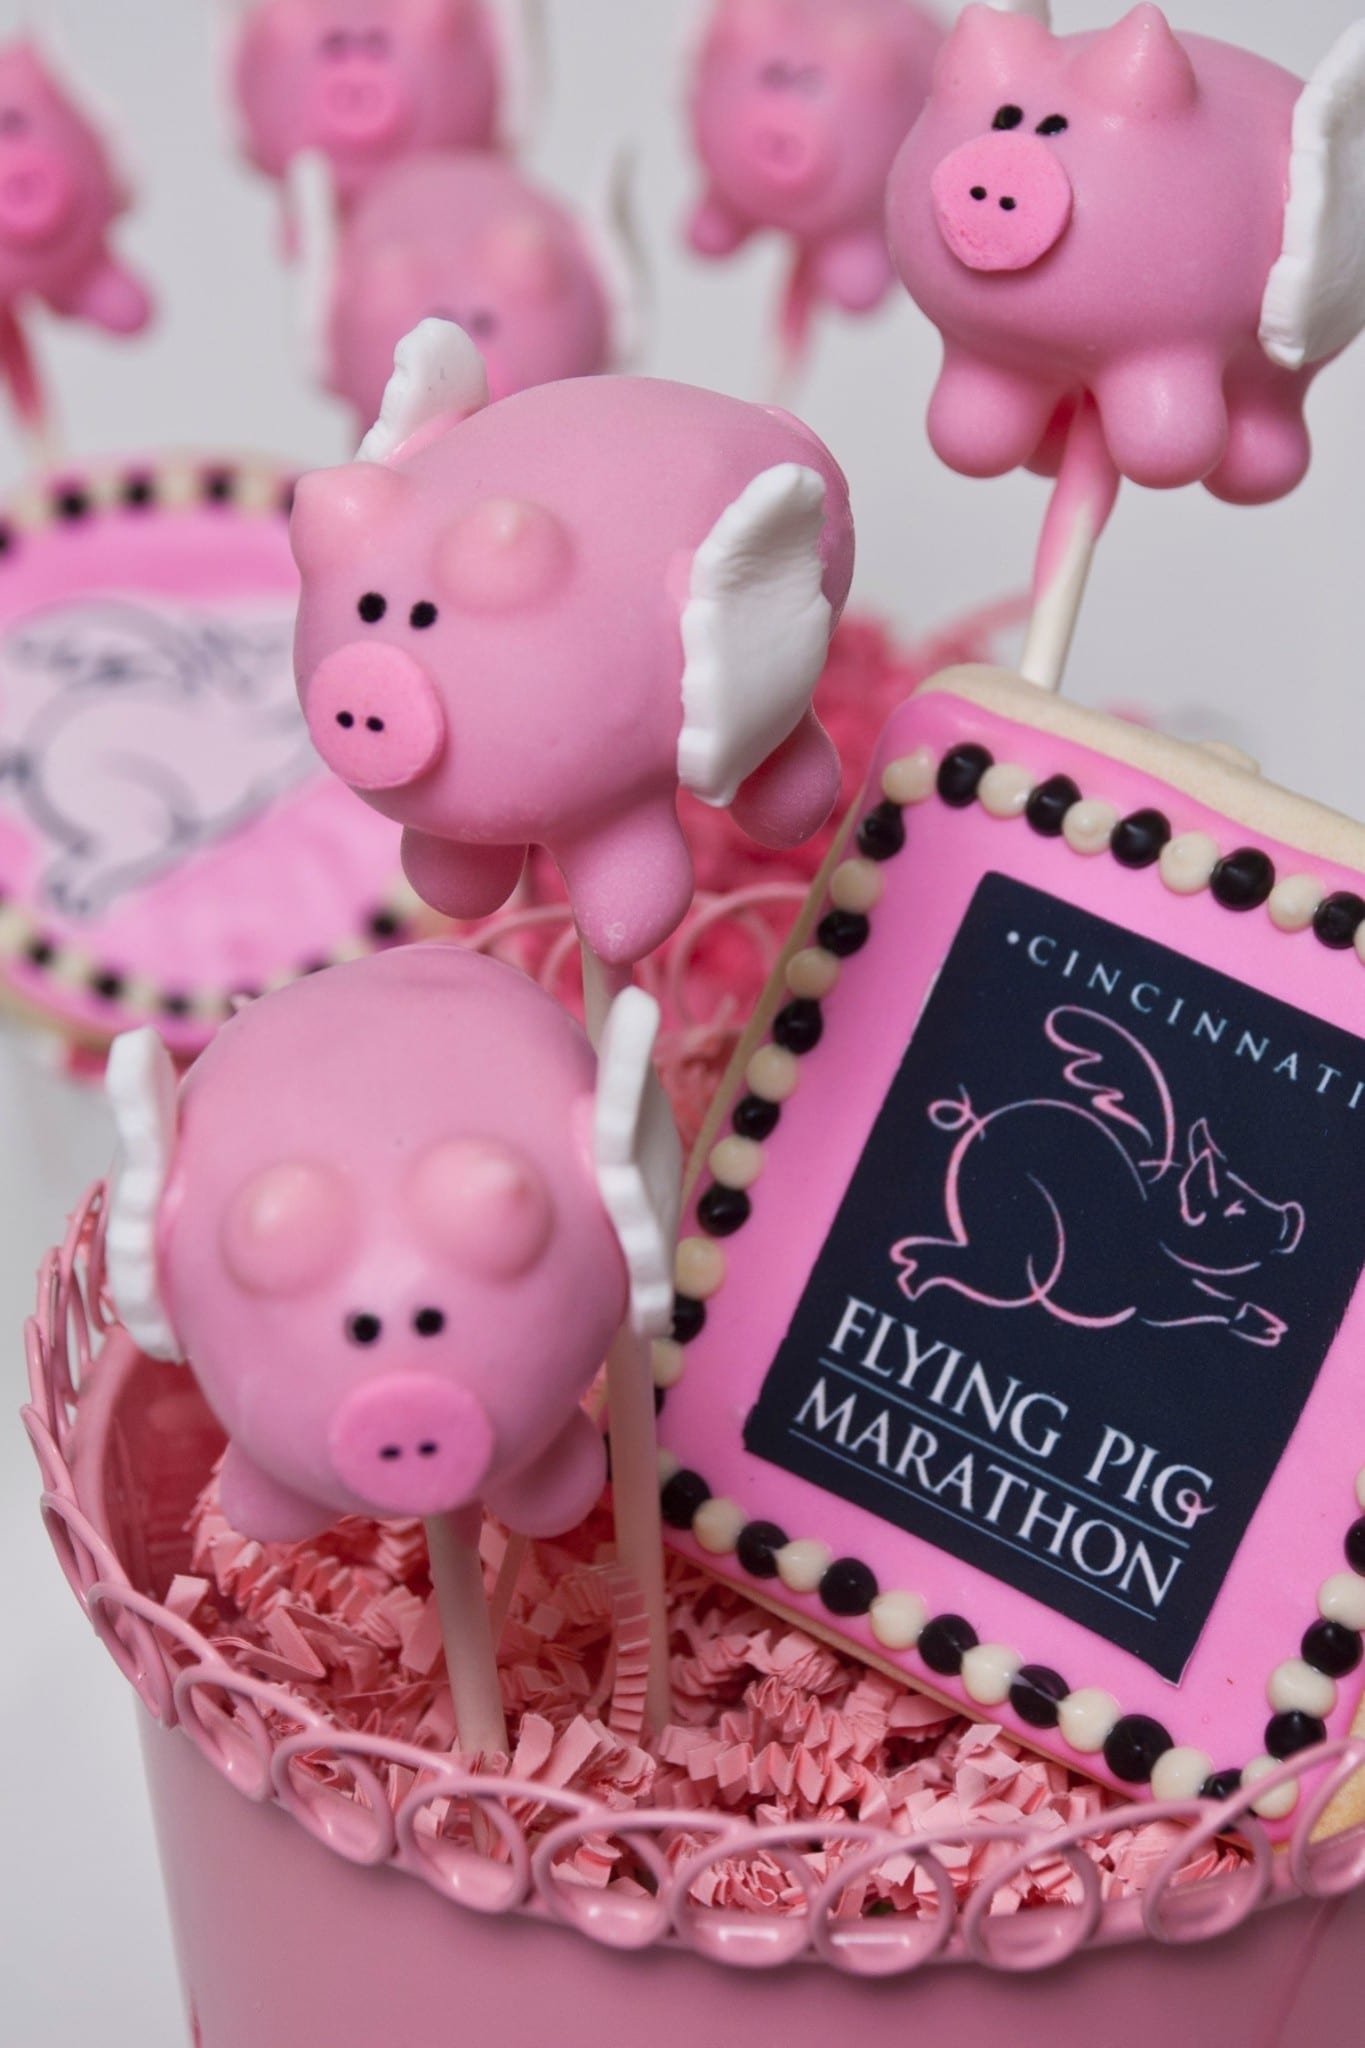 Flying Pig Marathon Cake Pops Cookies